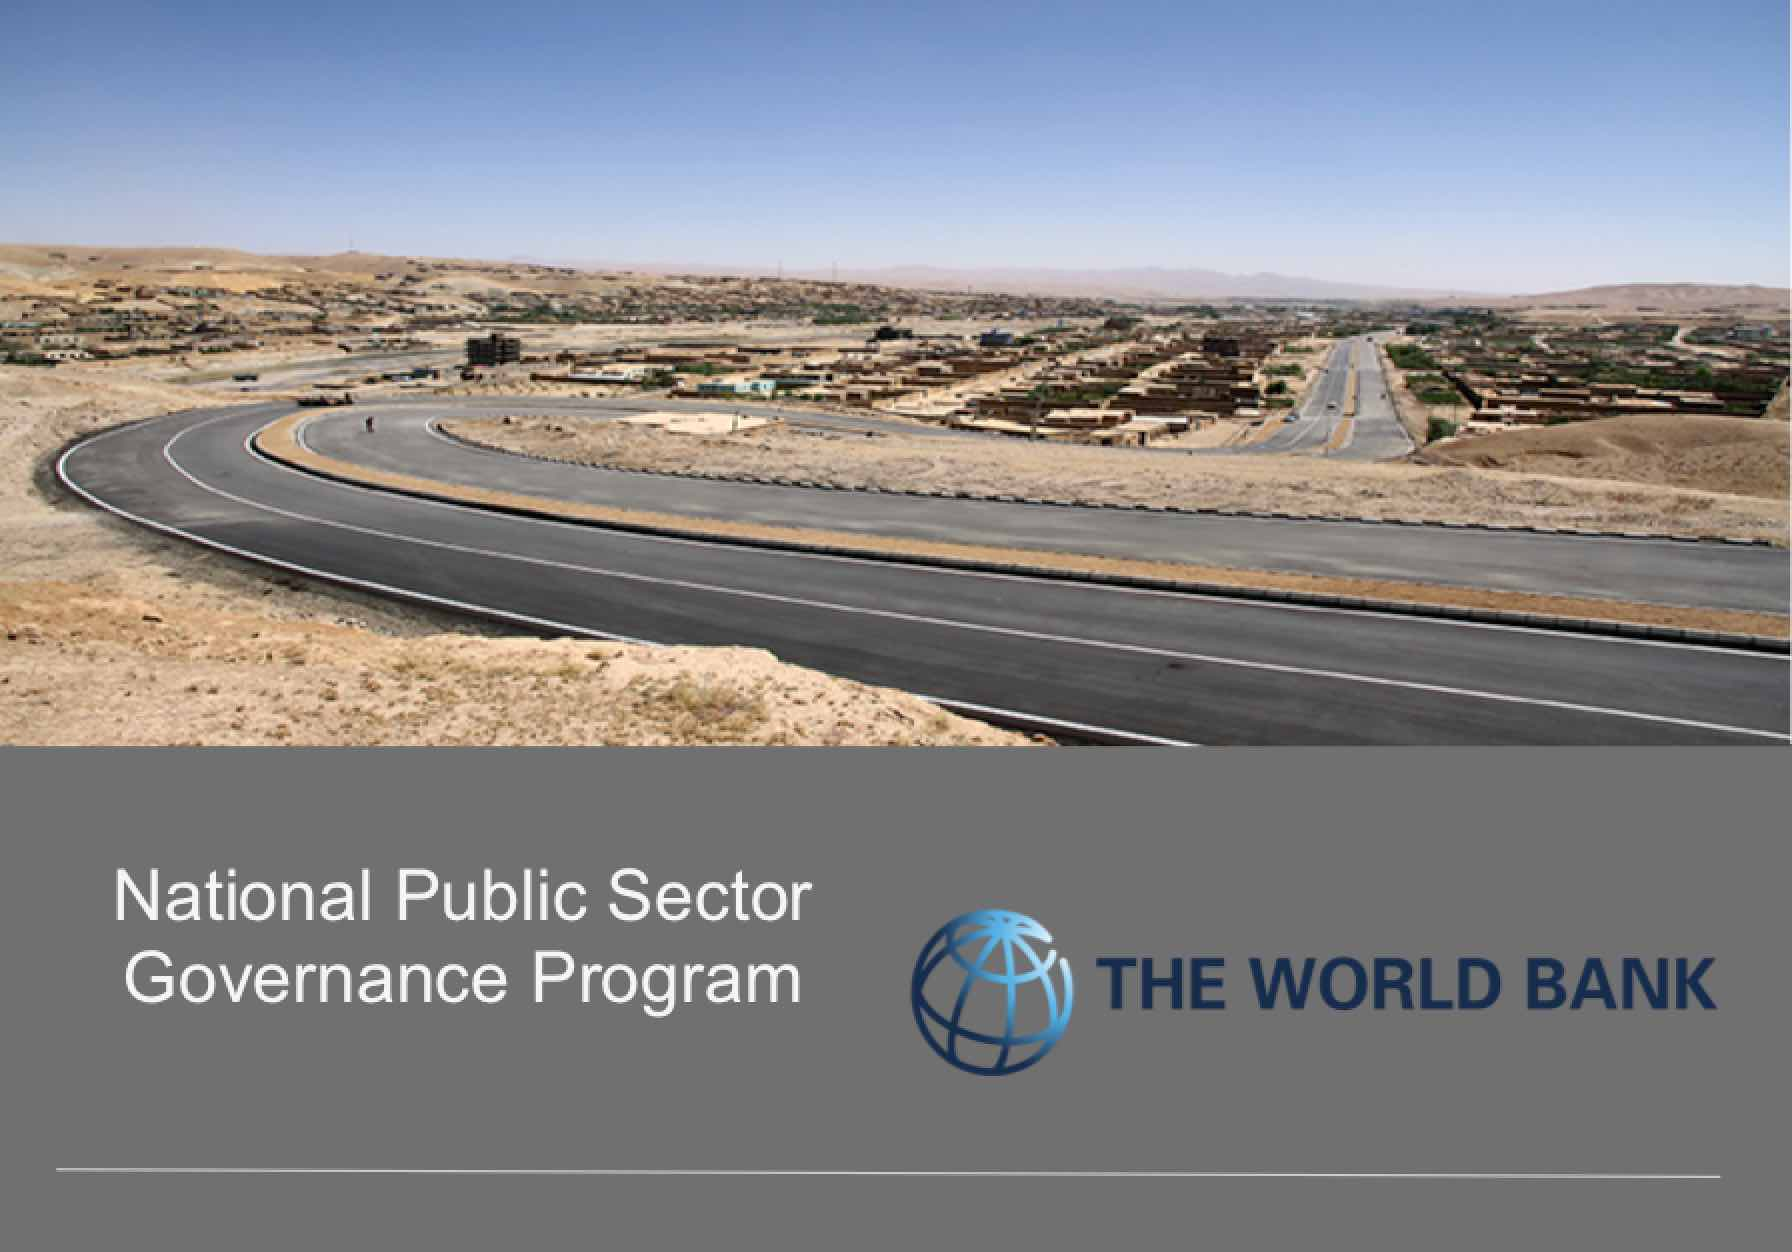 National Public Service Program